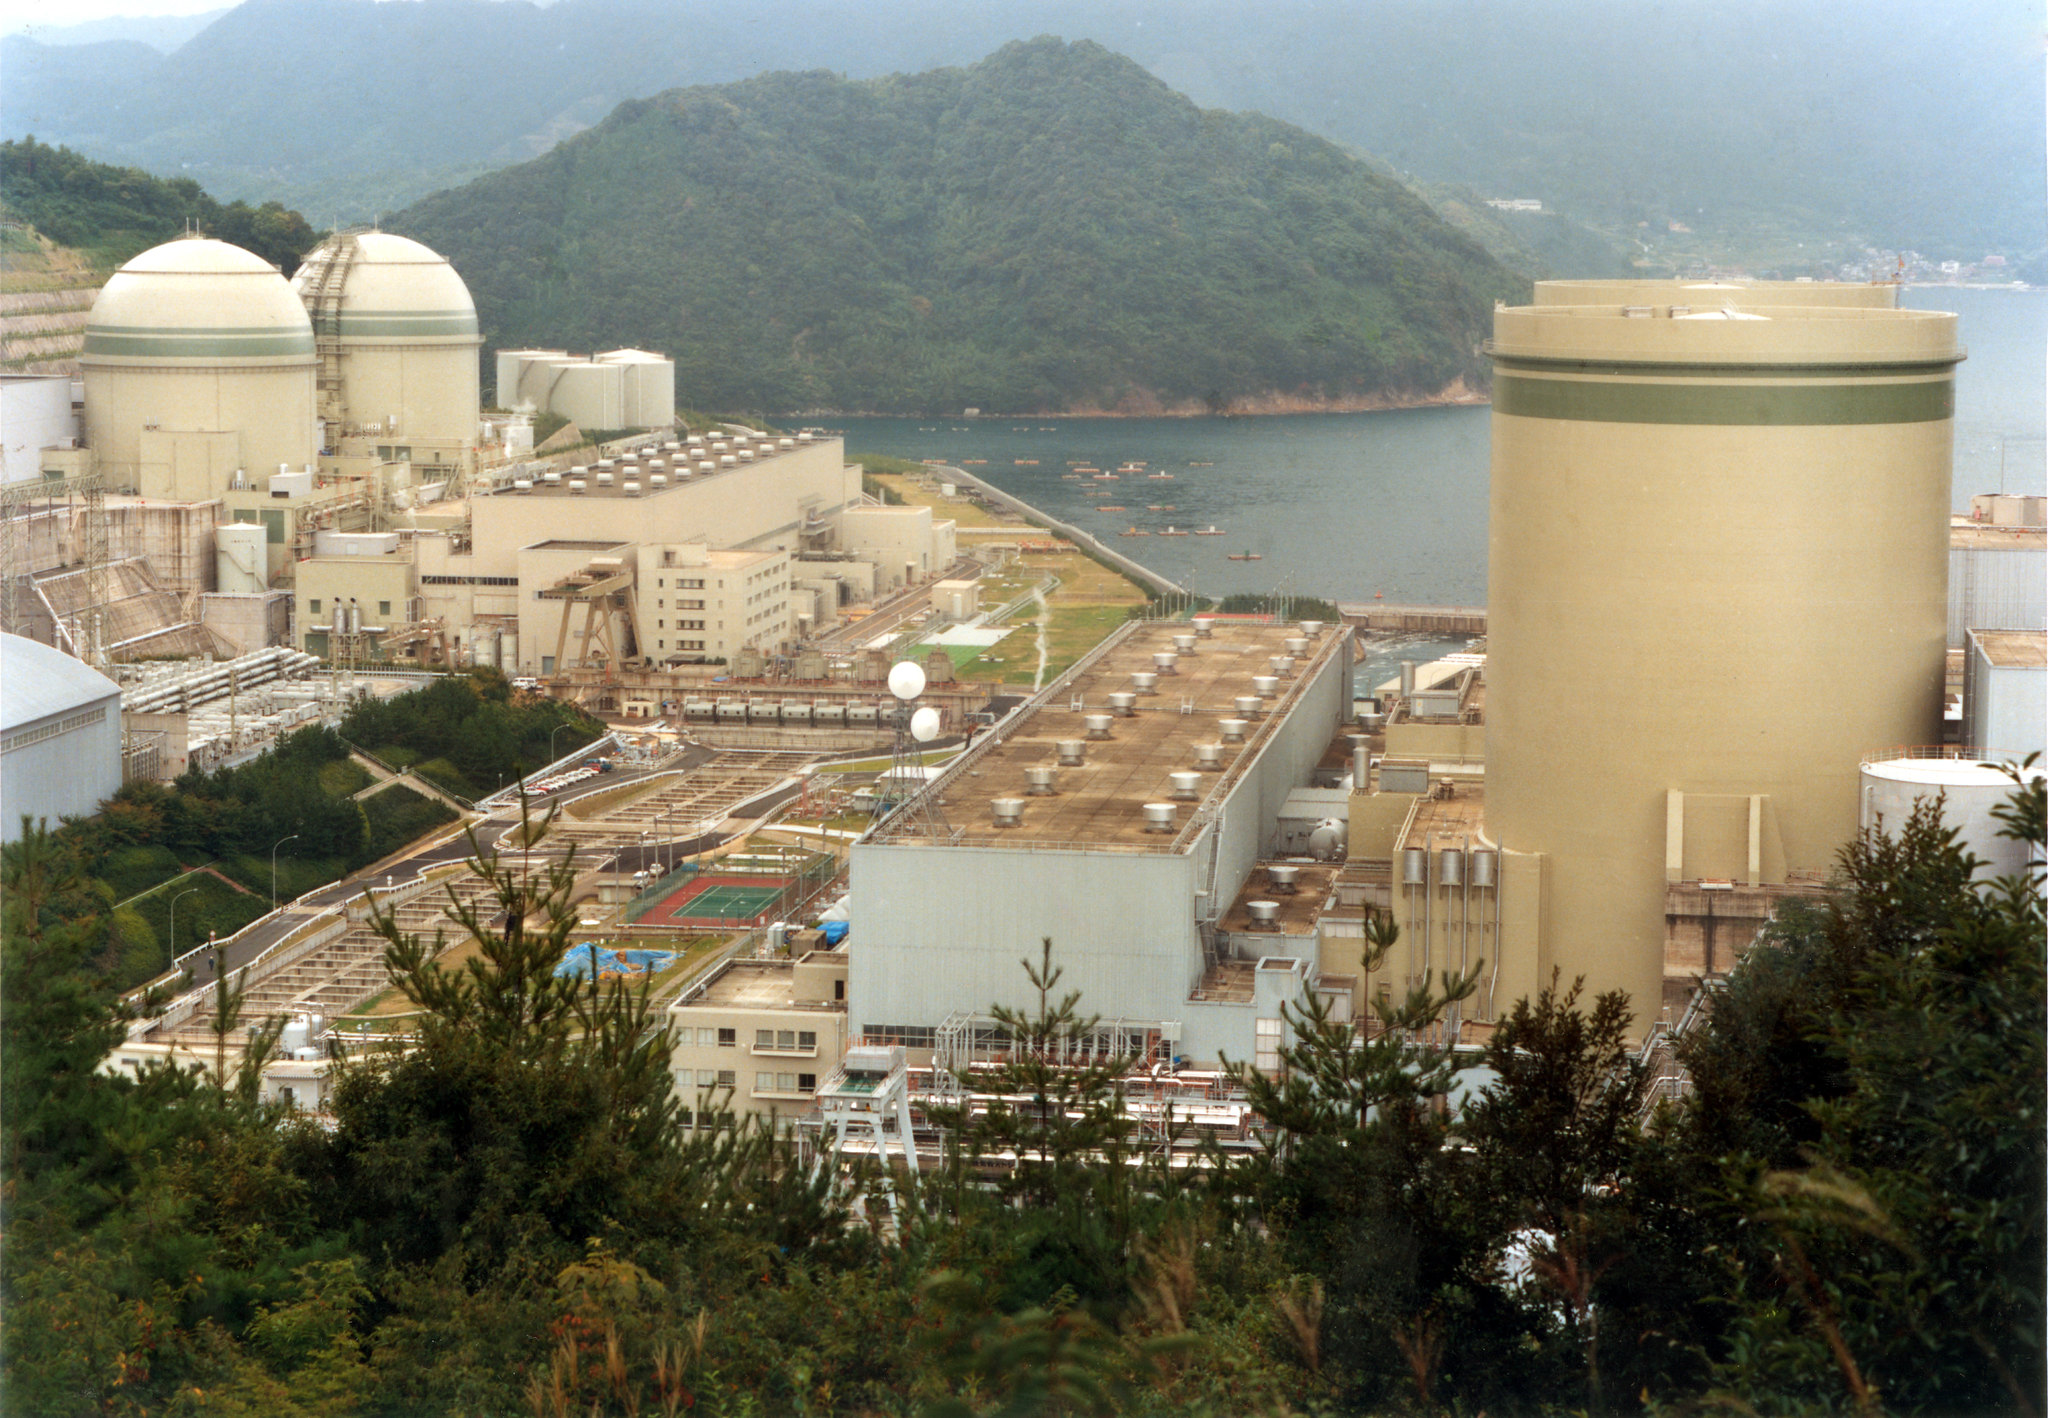 Japan, the sixth-largest emitter, pledges to become carbon neutral by 2050